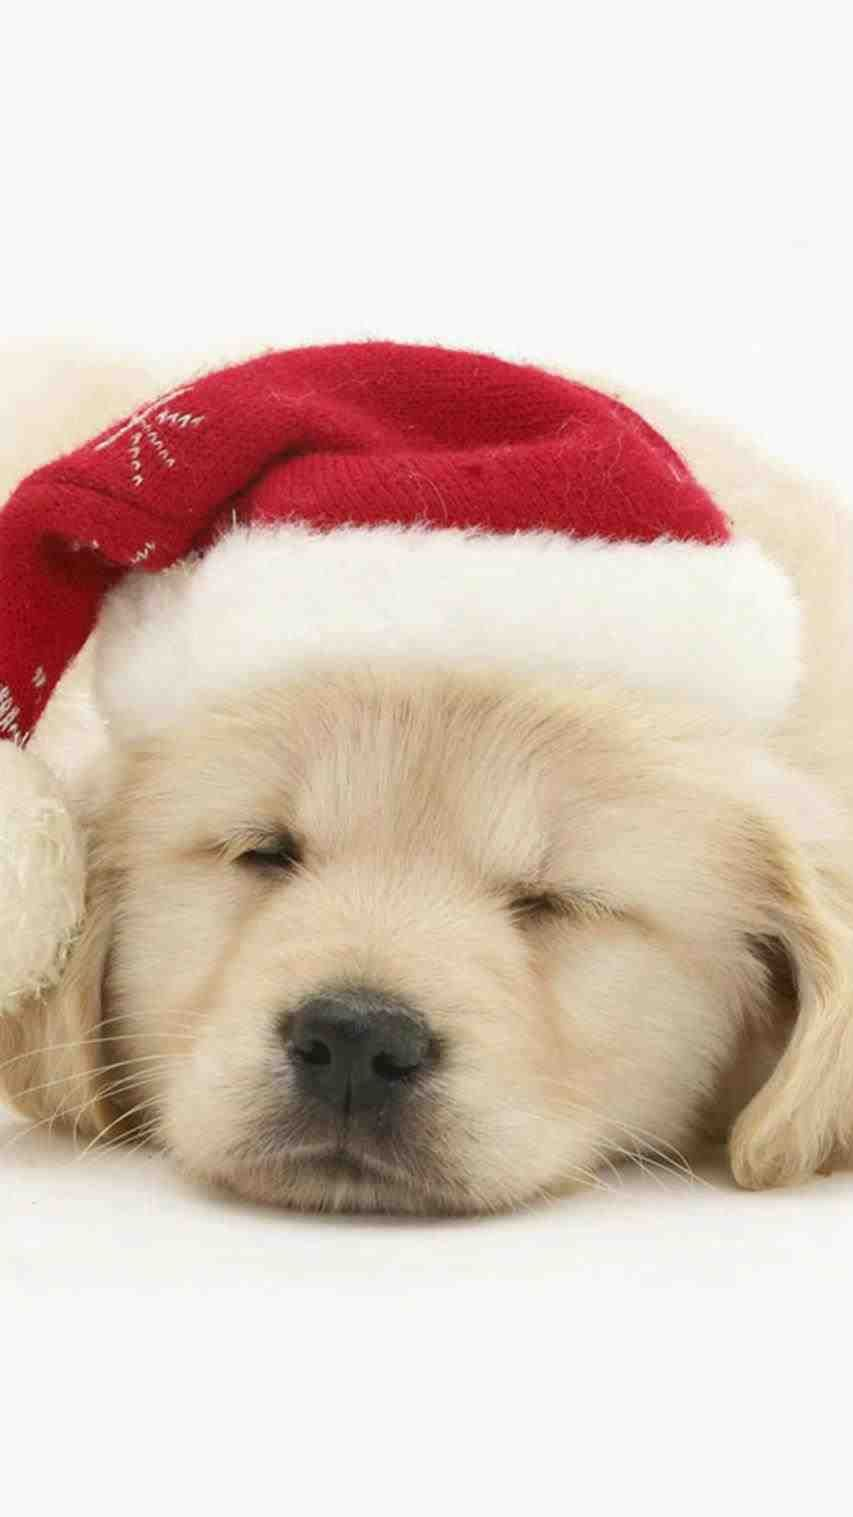 Cute Christmas Background Ipad Puppy Backgrounds Cute Dog Wallpaper Dog Wallpaper Iphone